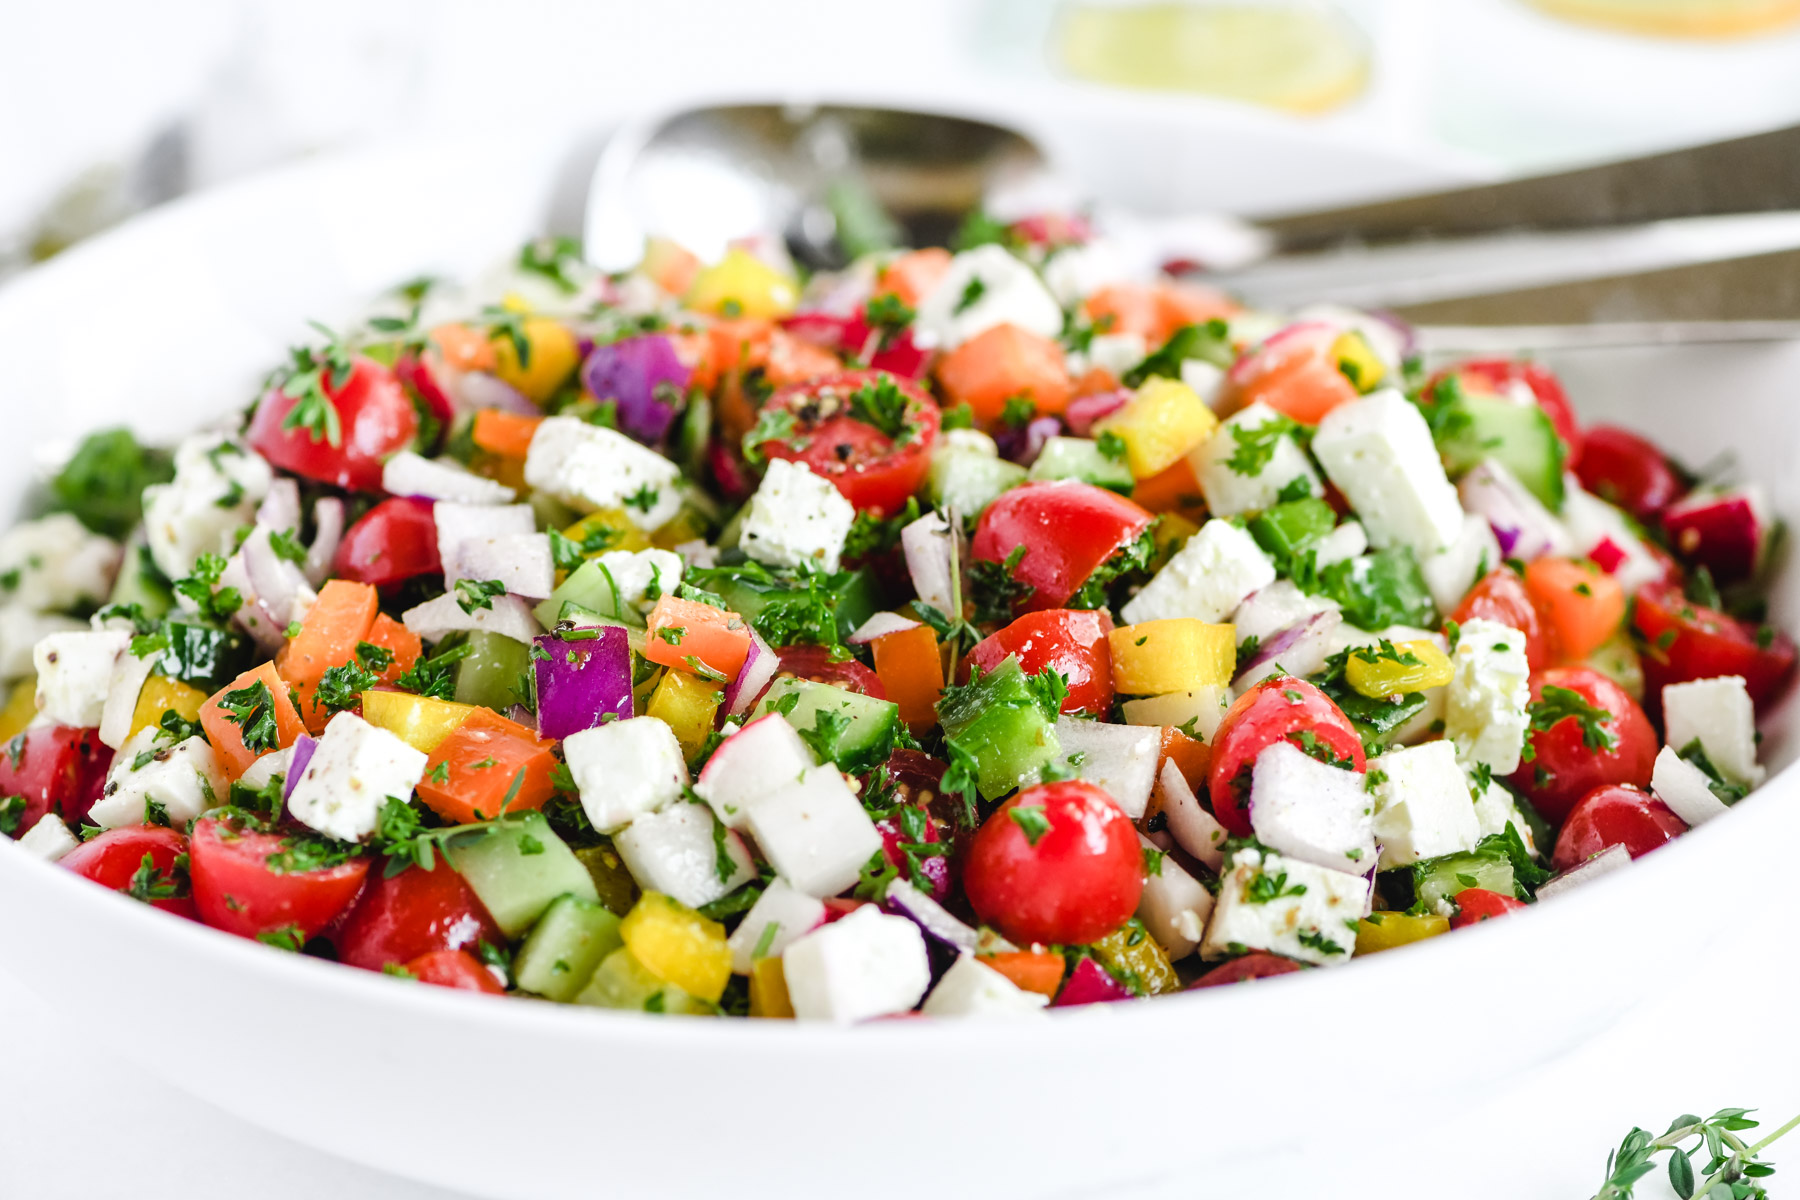 Israeli salad in a white bowl